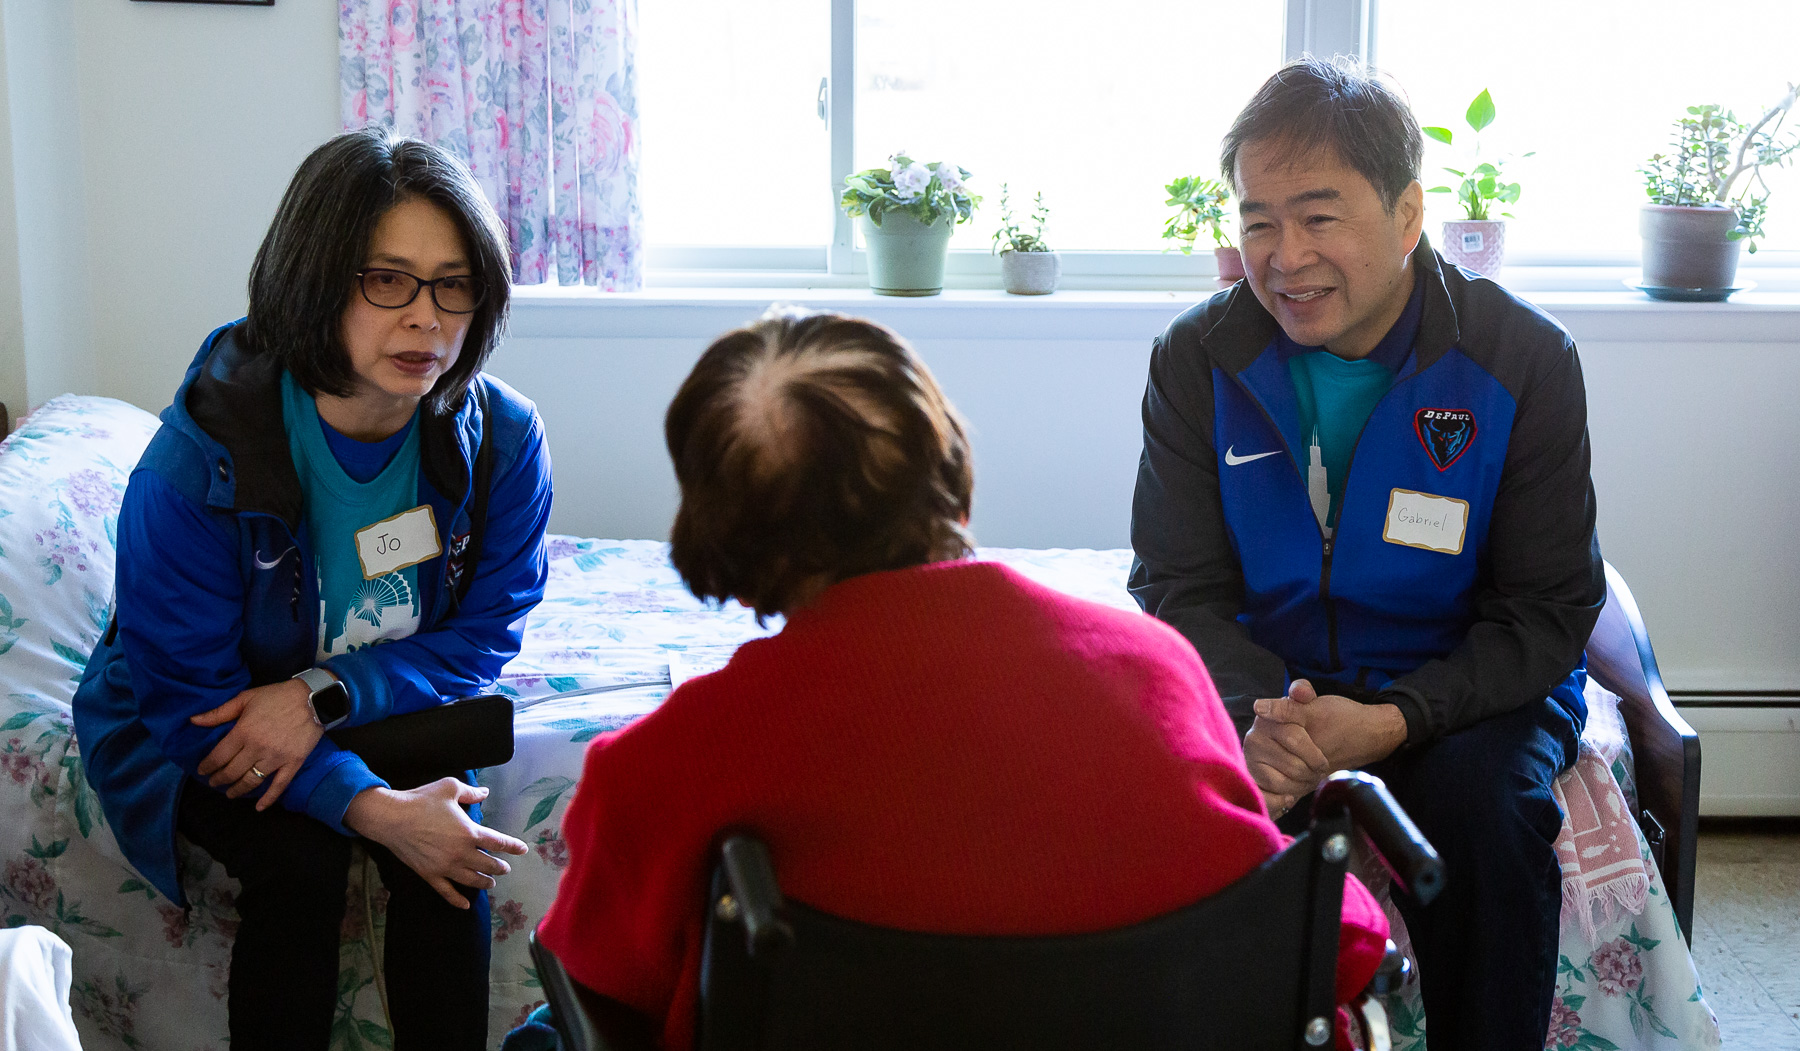 A. Gabriel Esteban, Ph.D., president of DePaul University, and his wife Josephine talk with a resident of St. Mary's Home in the Lincoln Park neighborhood. (DePaul University/Katie Donovan)